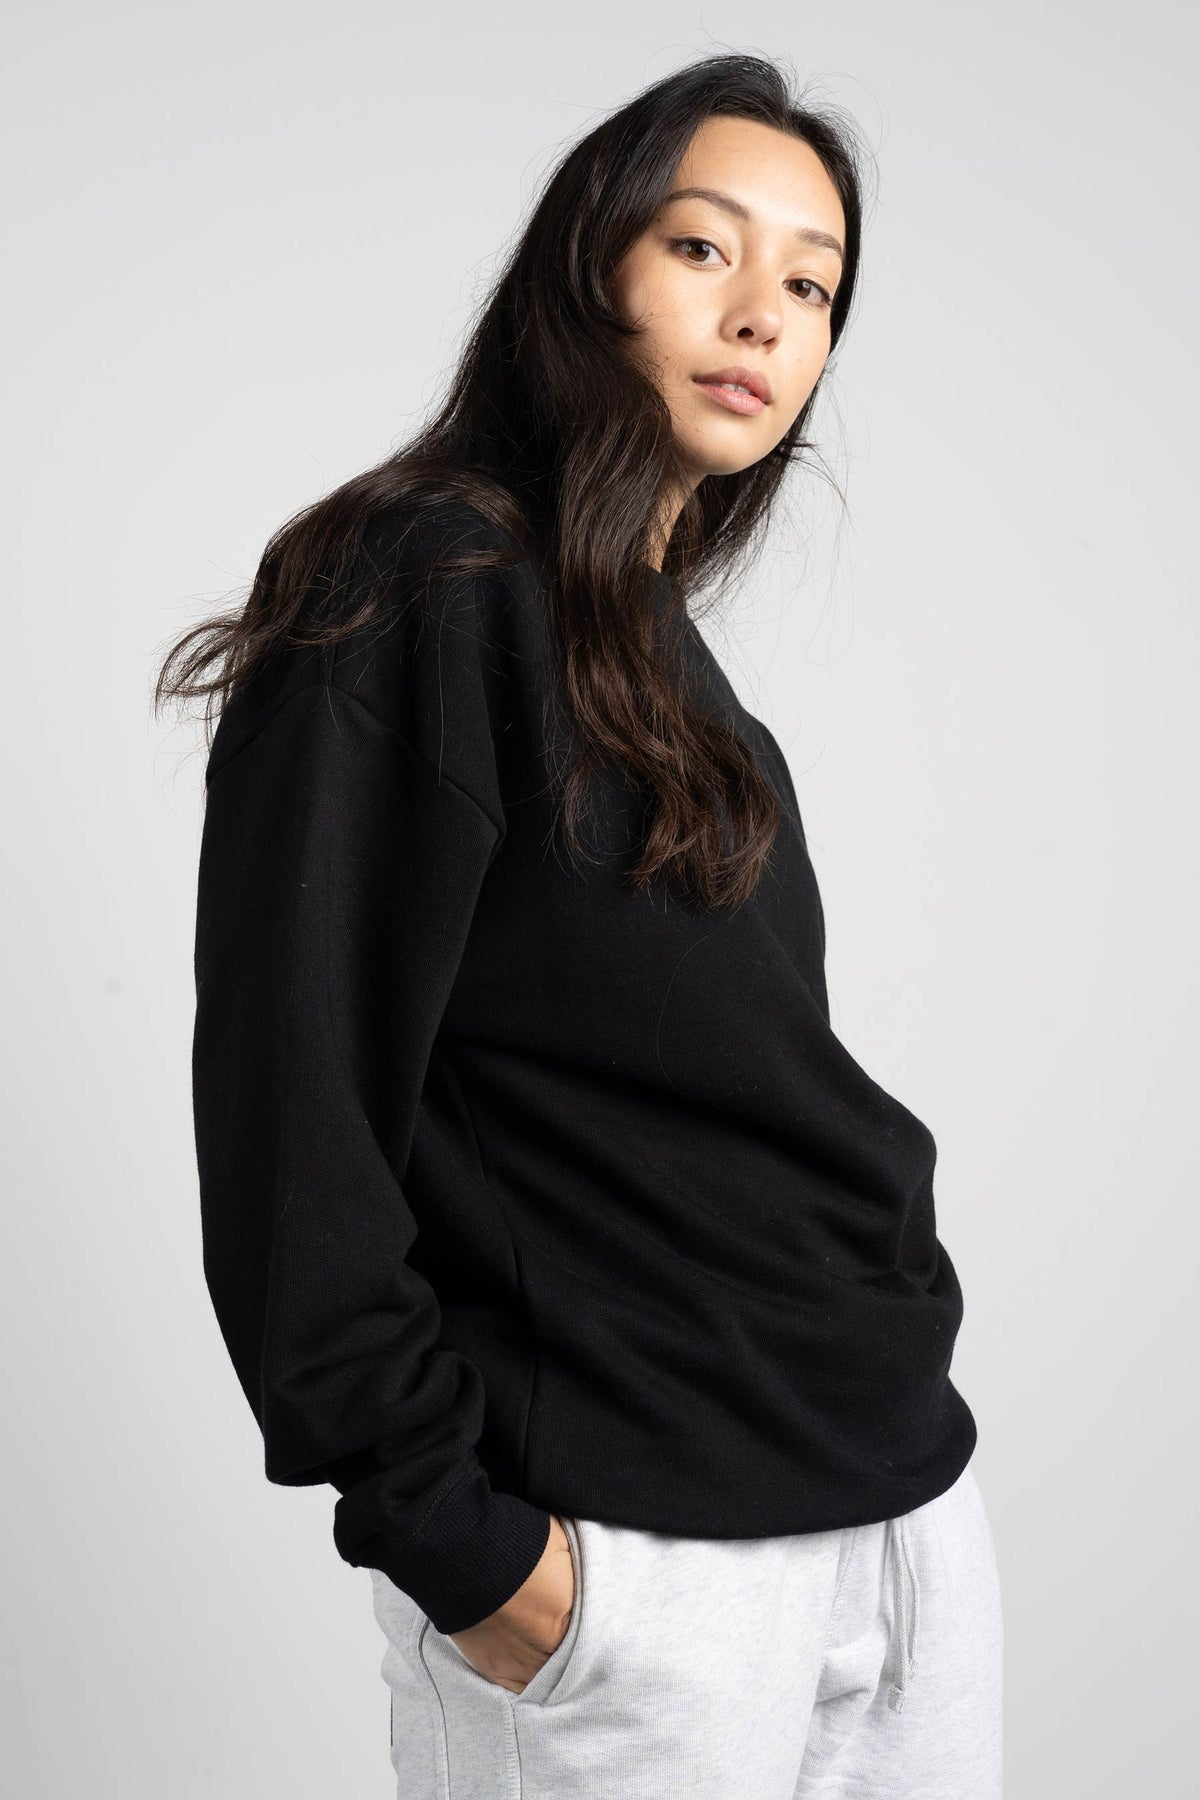 BD Crew (Unisex Heavyweight Organic Cotton) - Black